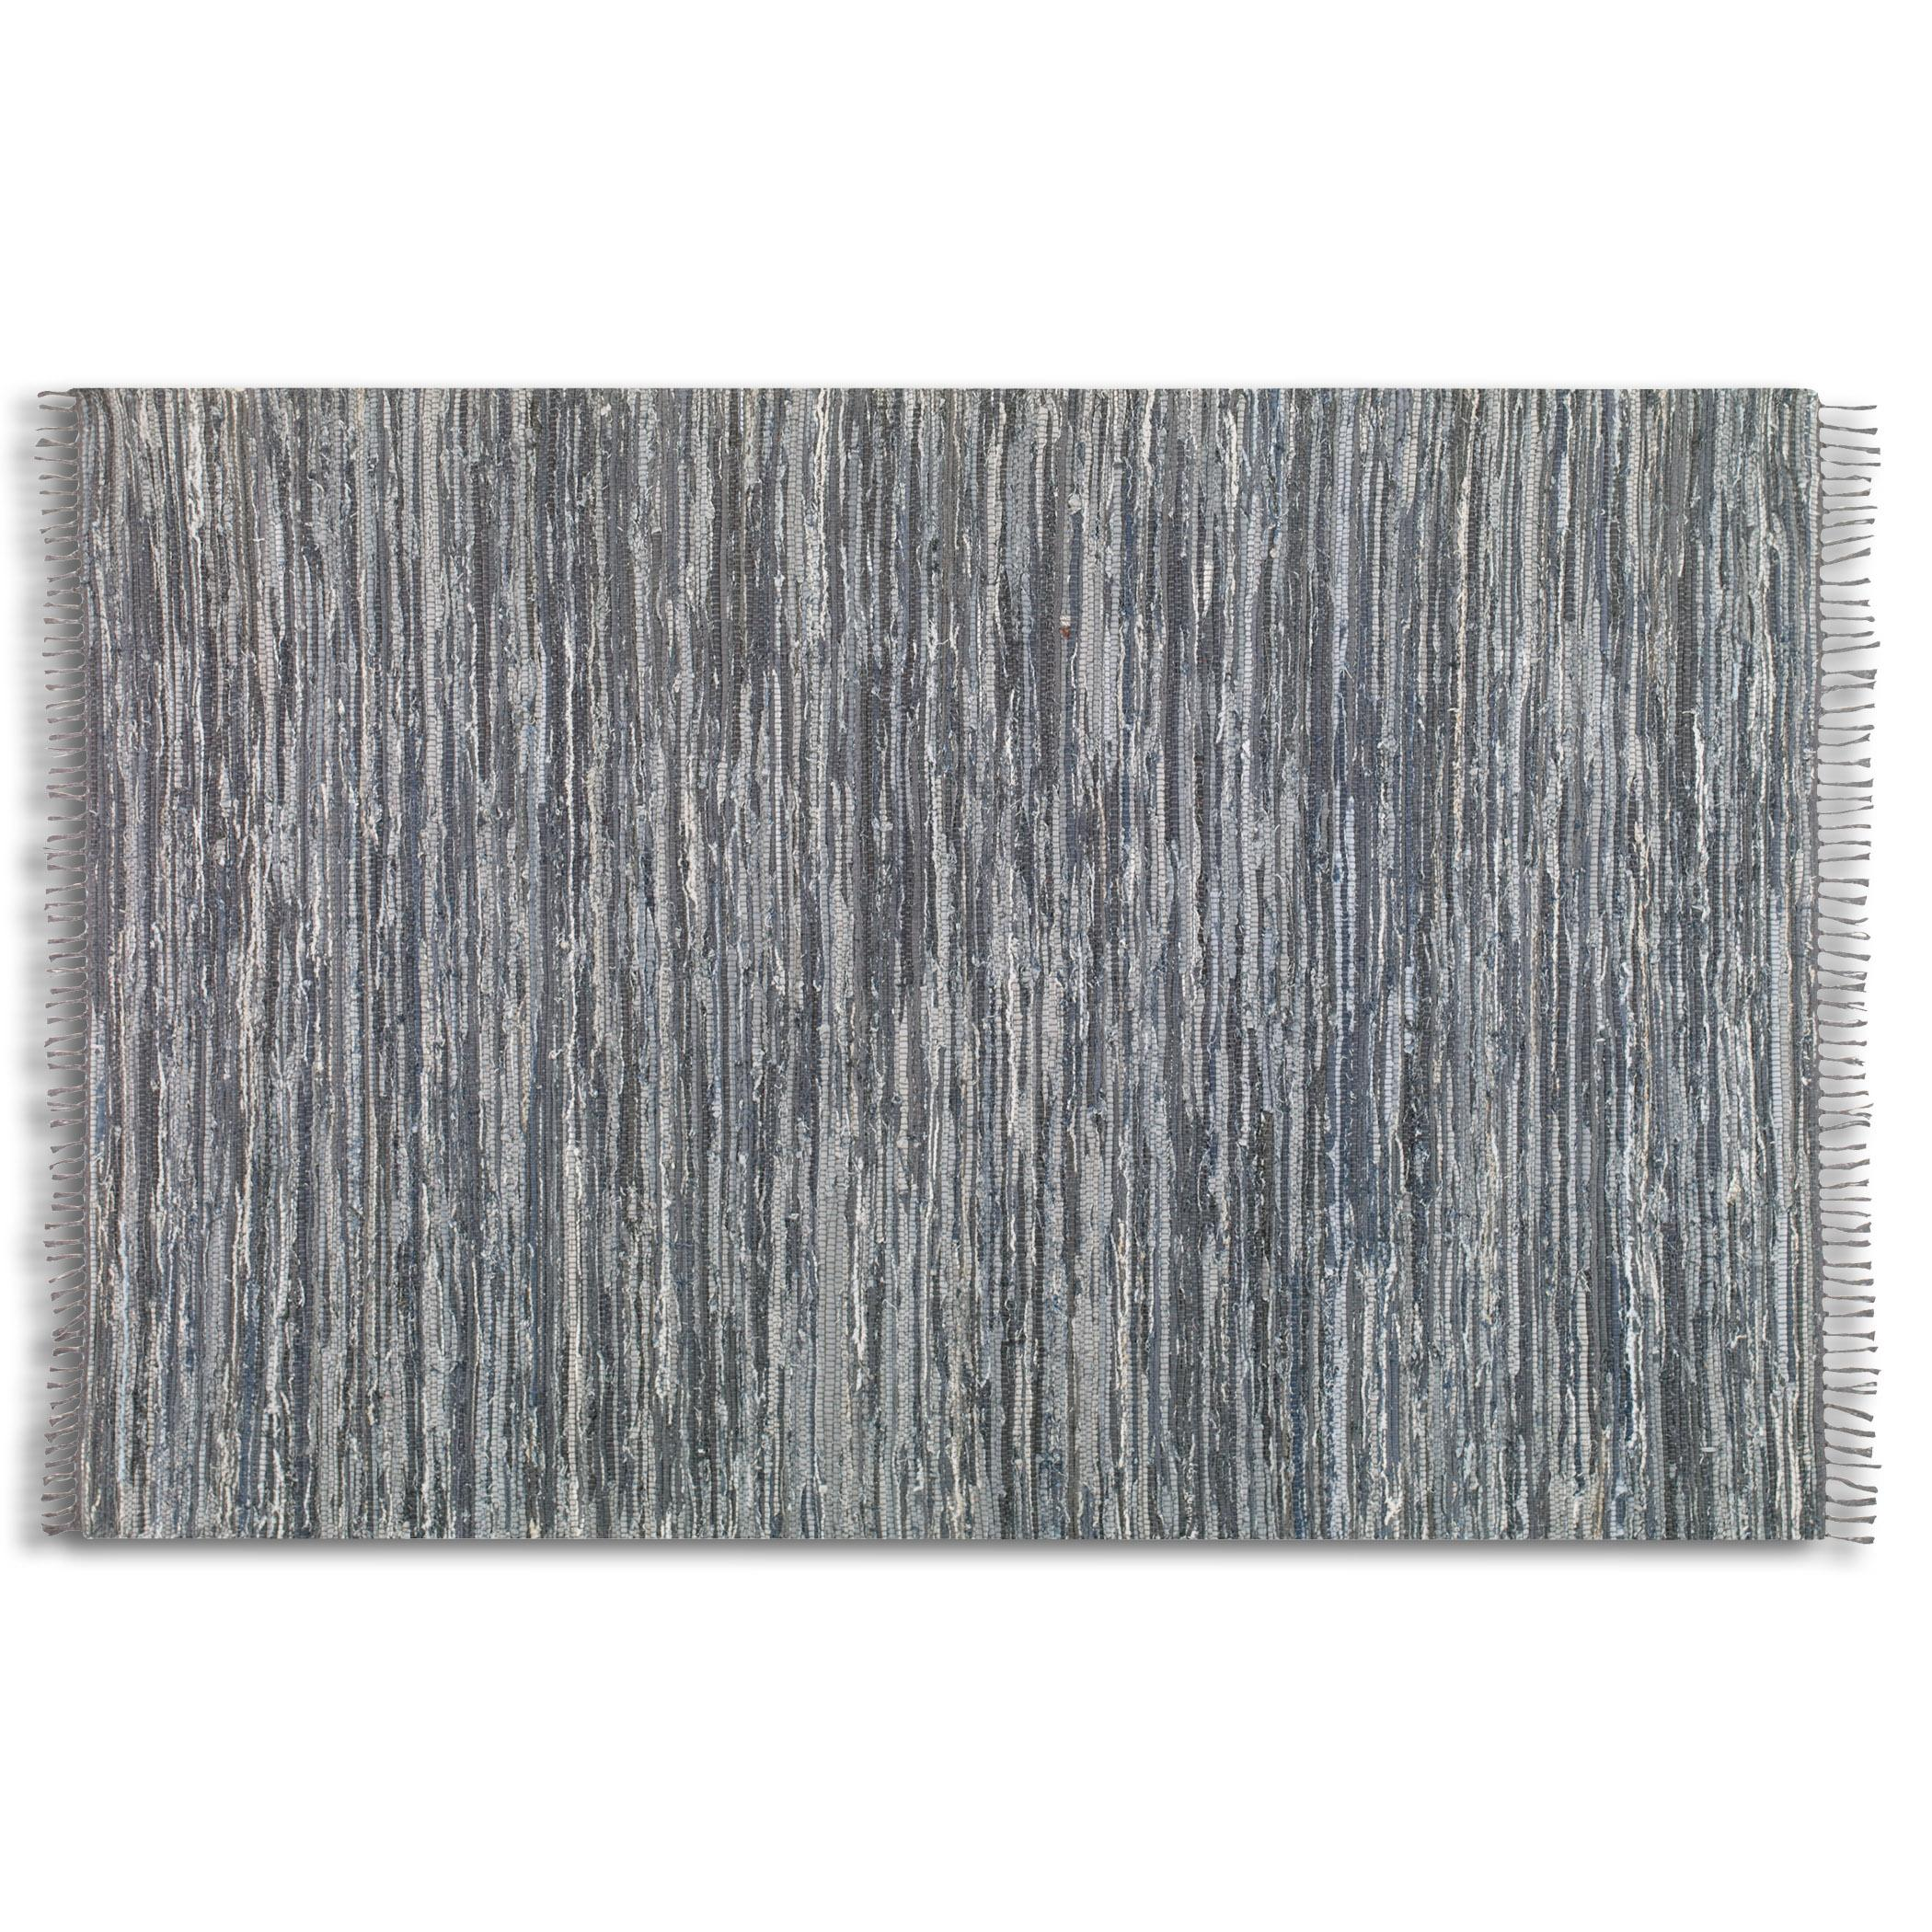 Uttermost Rugs Stockton 5 X 8 Rug - Blue - Item Number: 71057-5